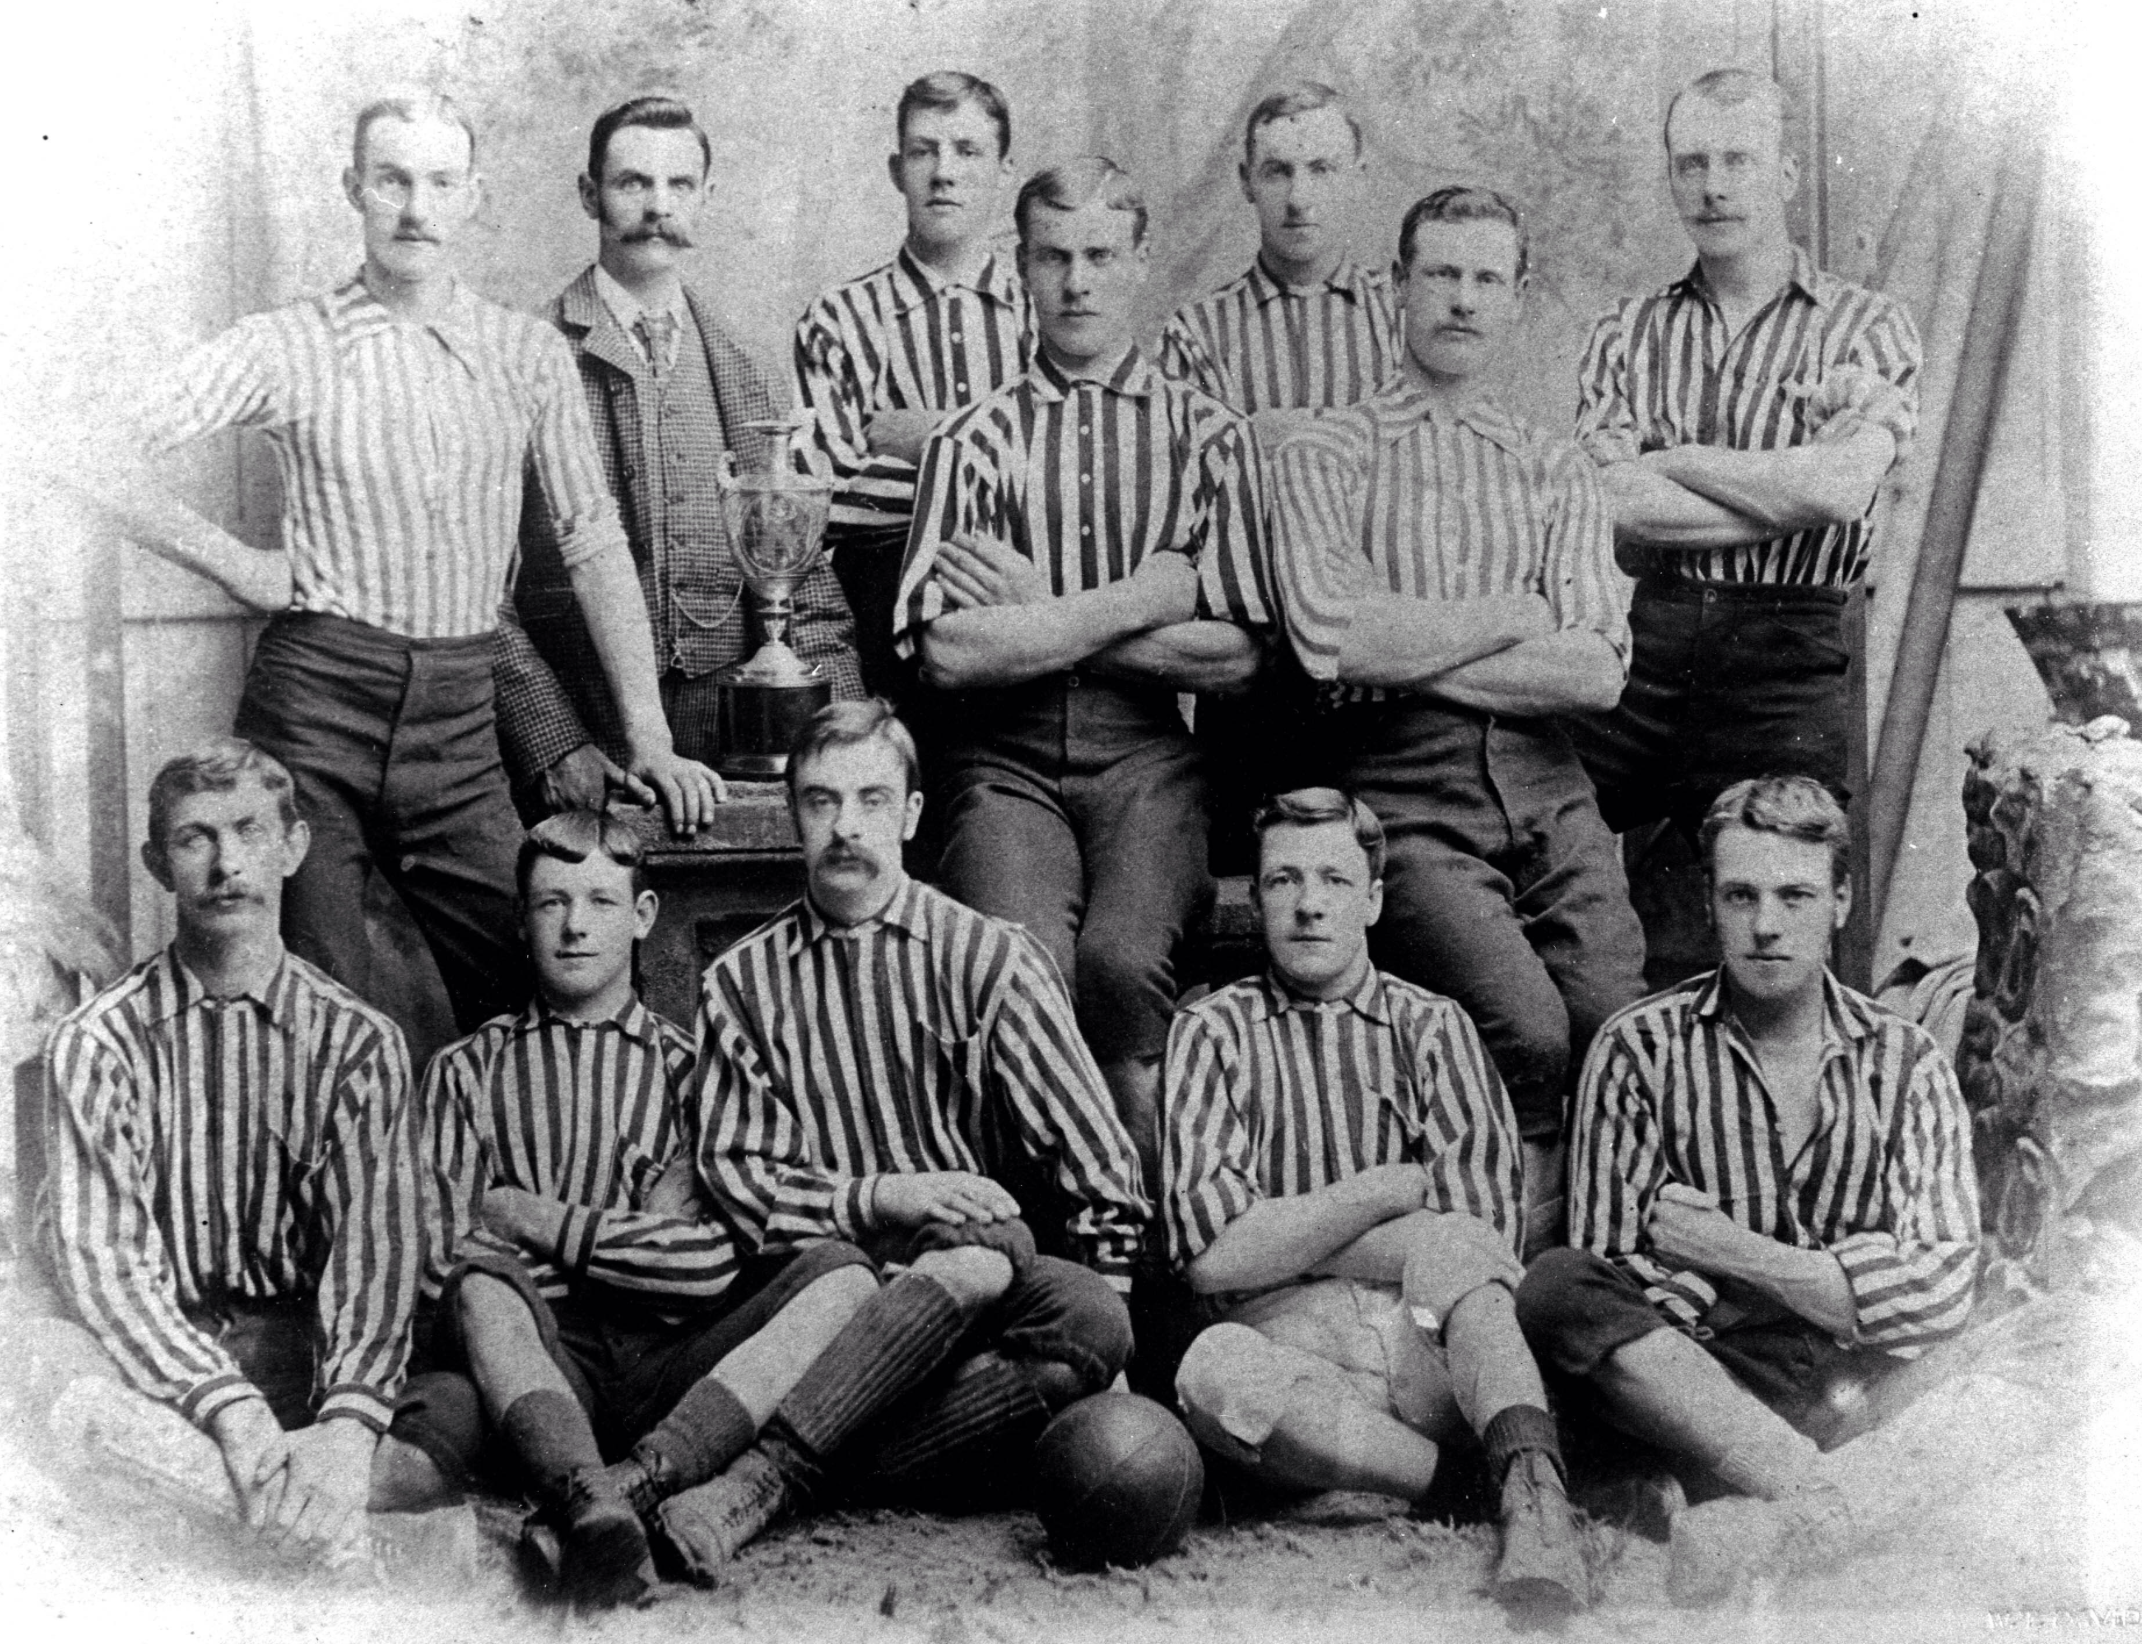 Moffat United Scotland around 1894